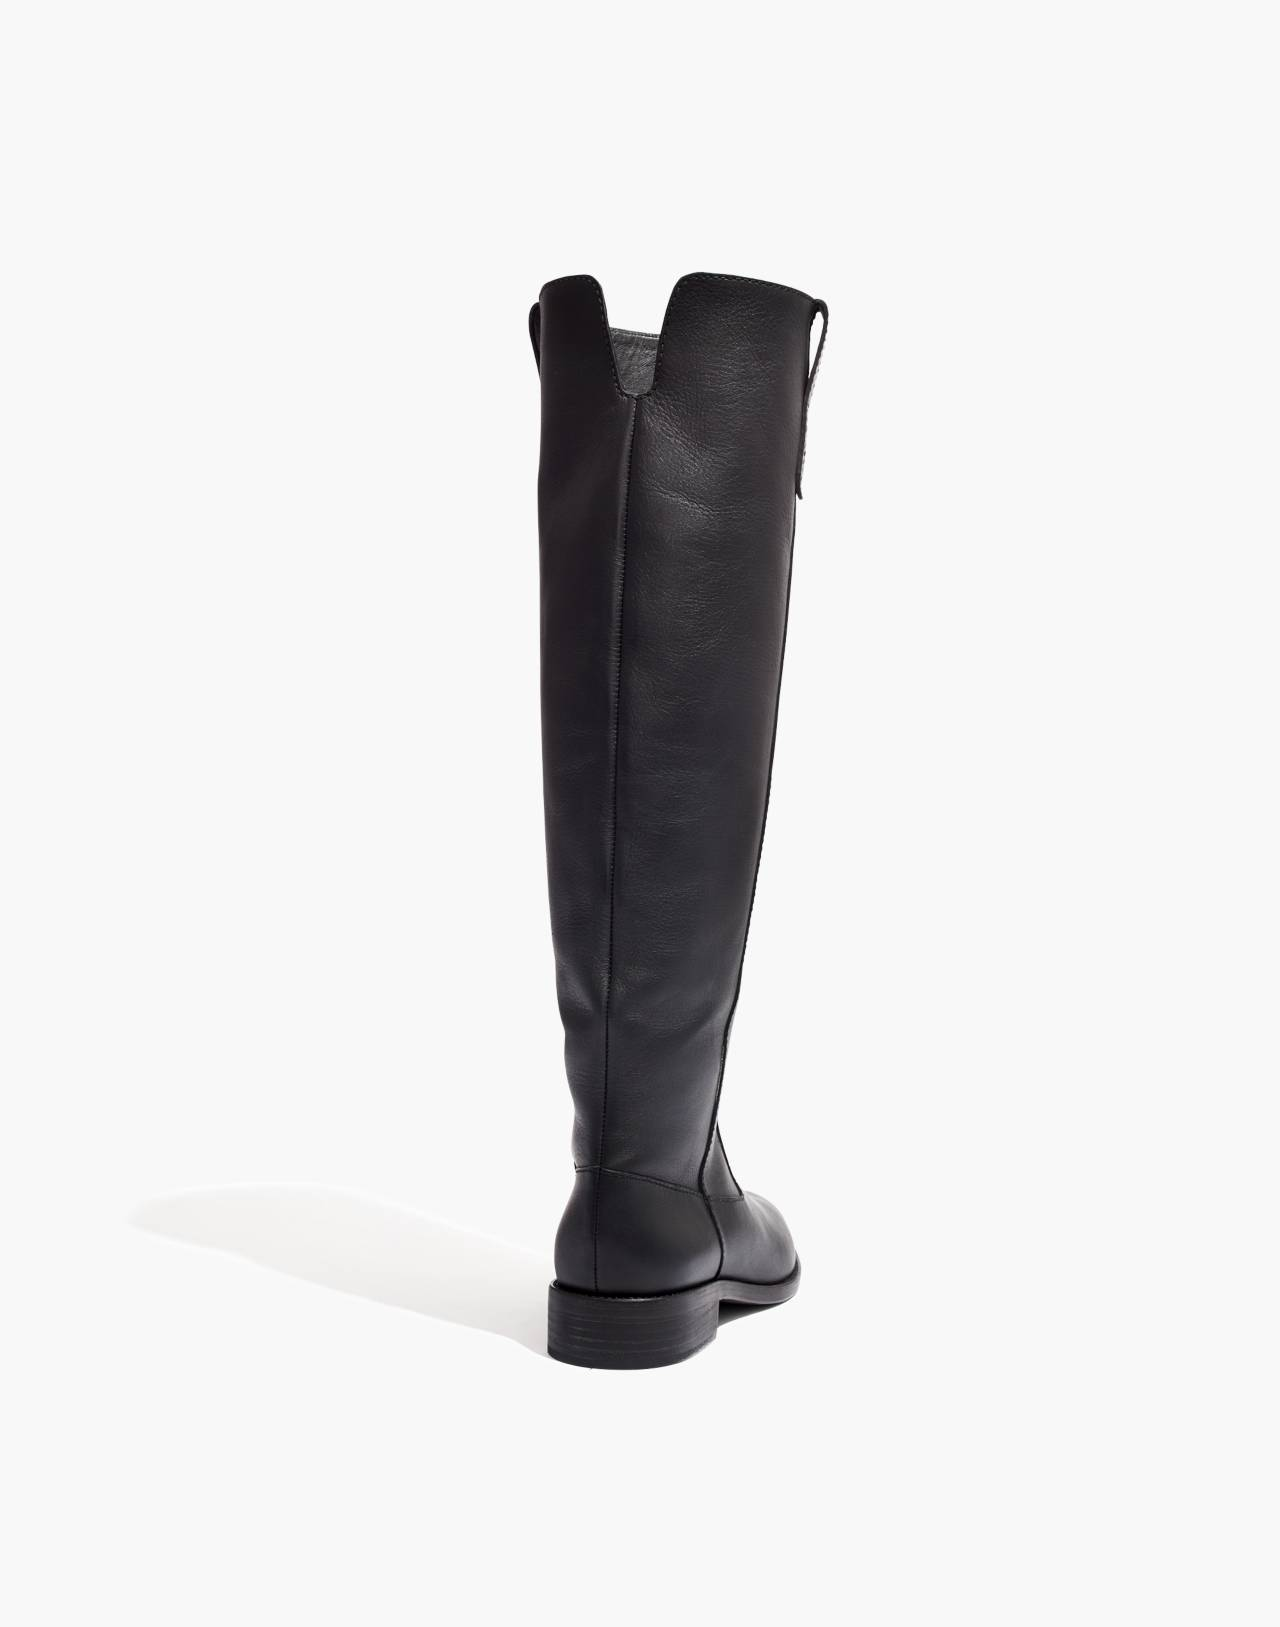 The Allie Knee-High Boot in true black image 3